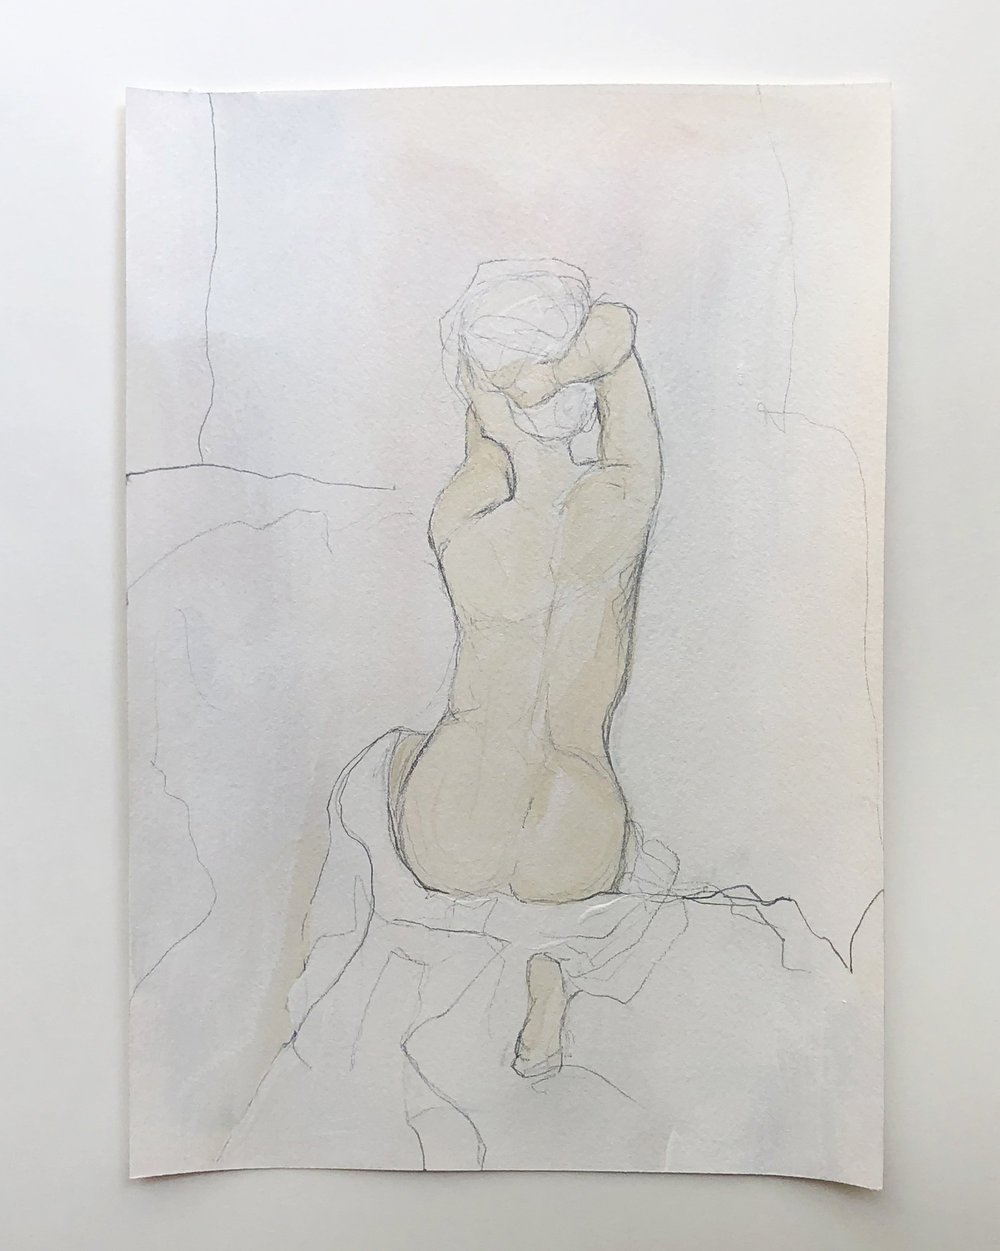 """Figure Study"" series   $150 - Acrylic and graphite on archival paper / 8x11"" / Available at Lyons Share Gallery"